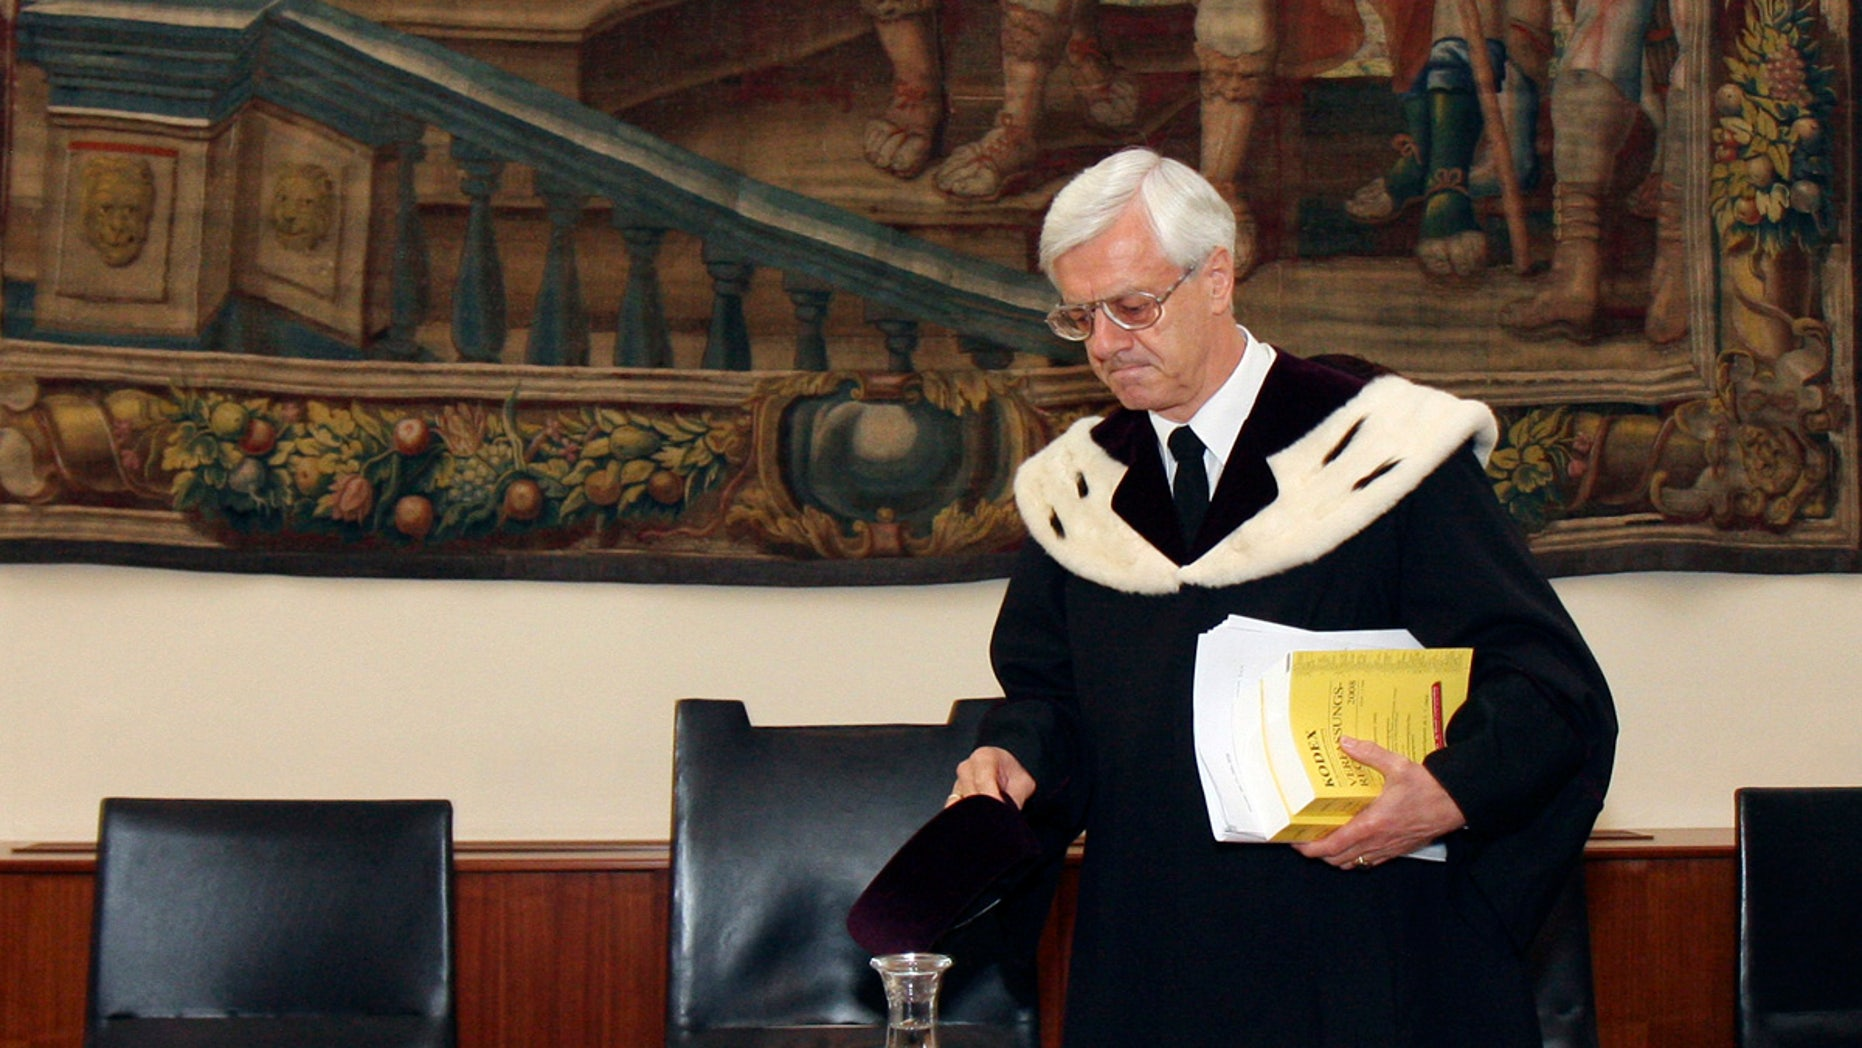 The Austrian Constitutional Court with President Gerhart Holzinger meets in Vienna, Austria.